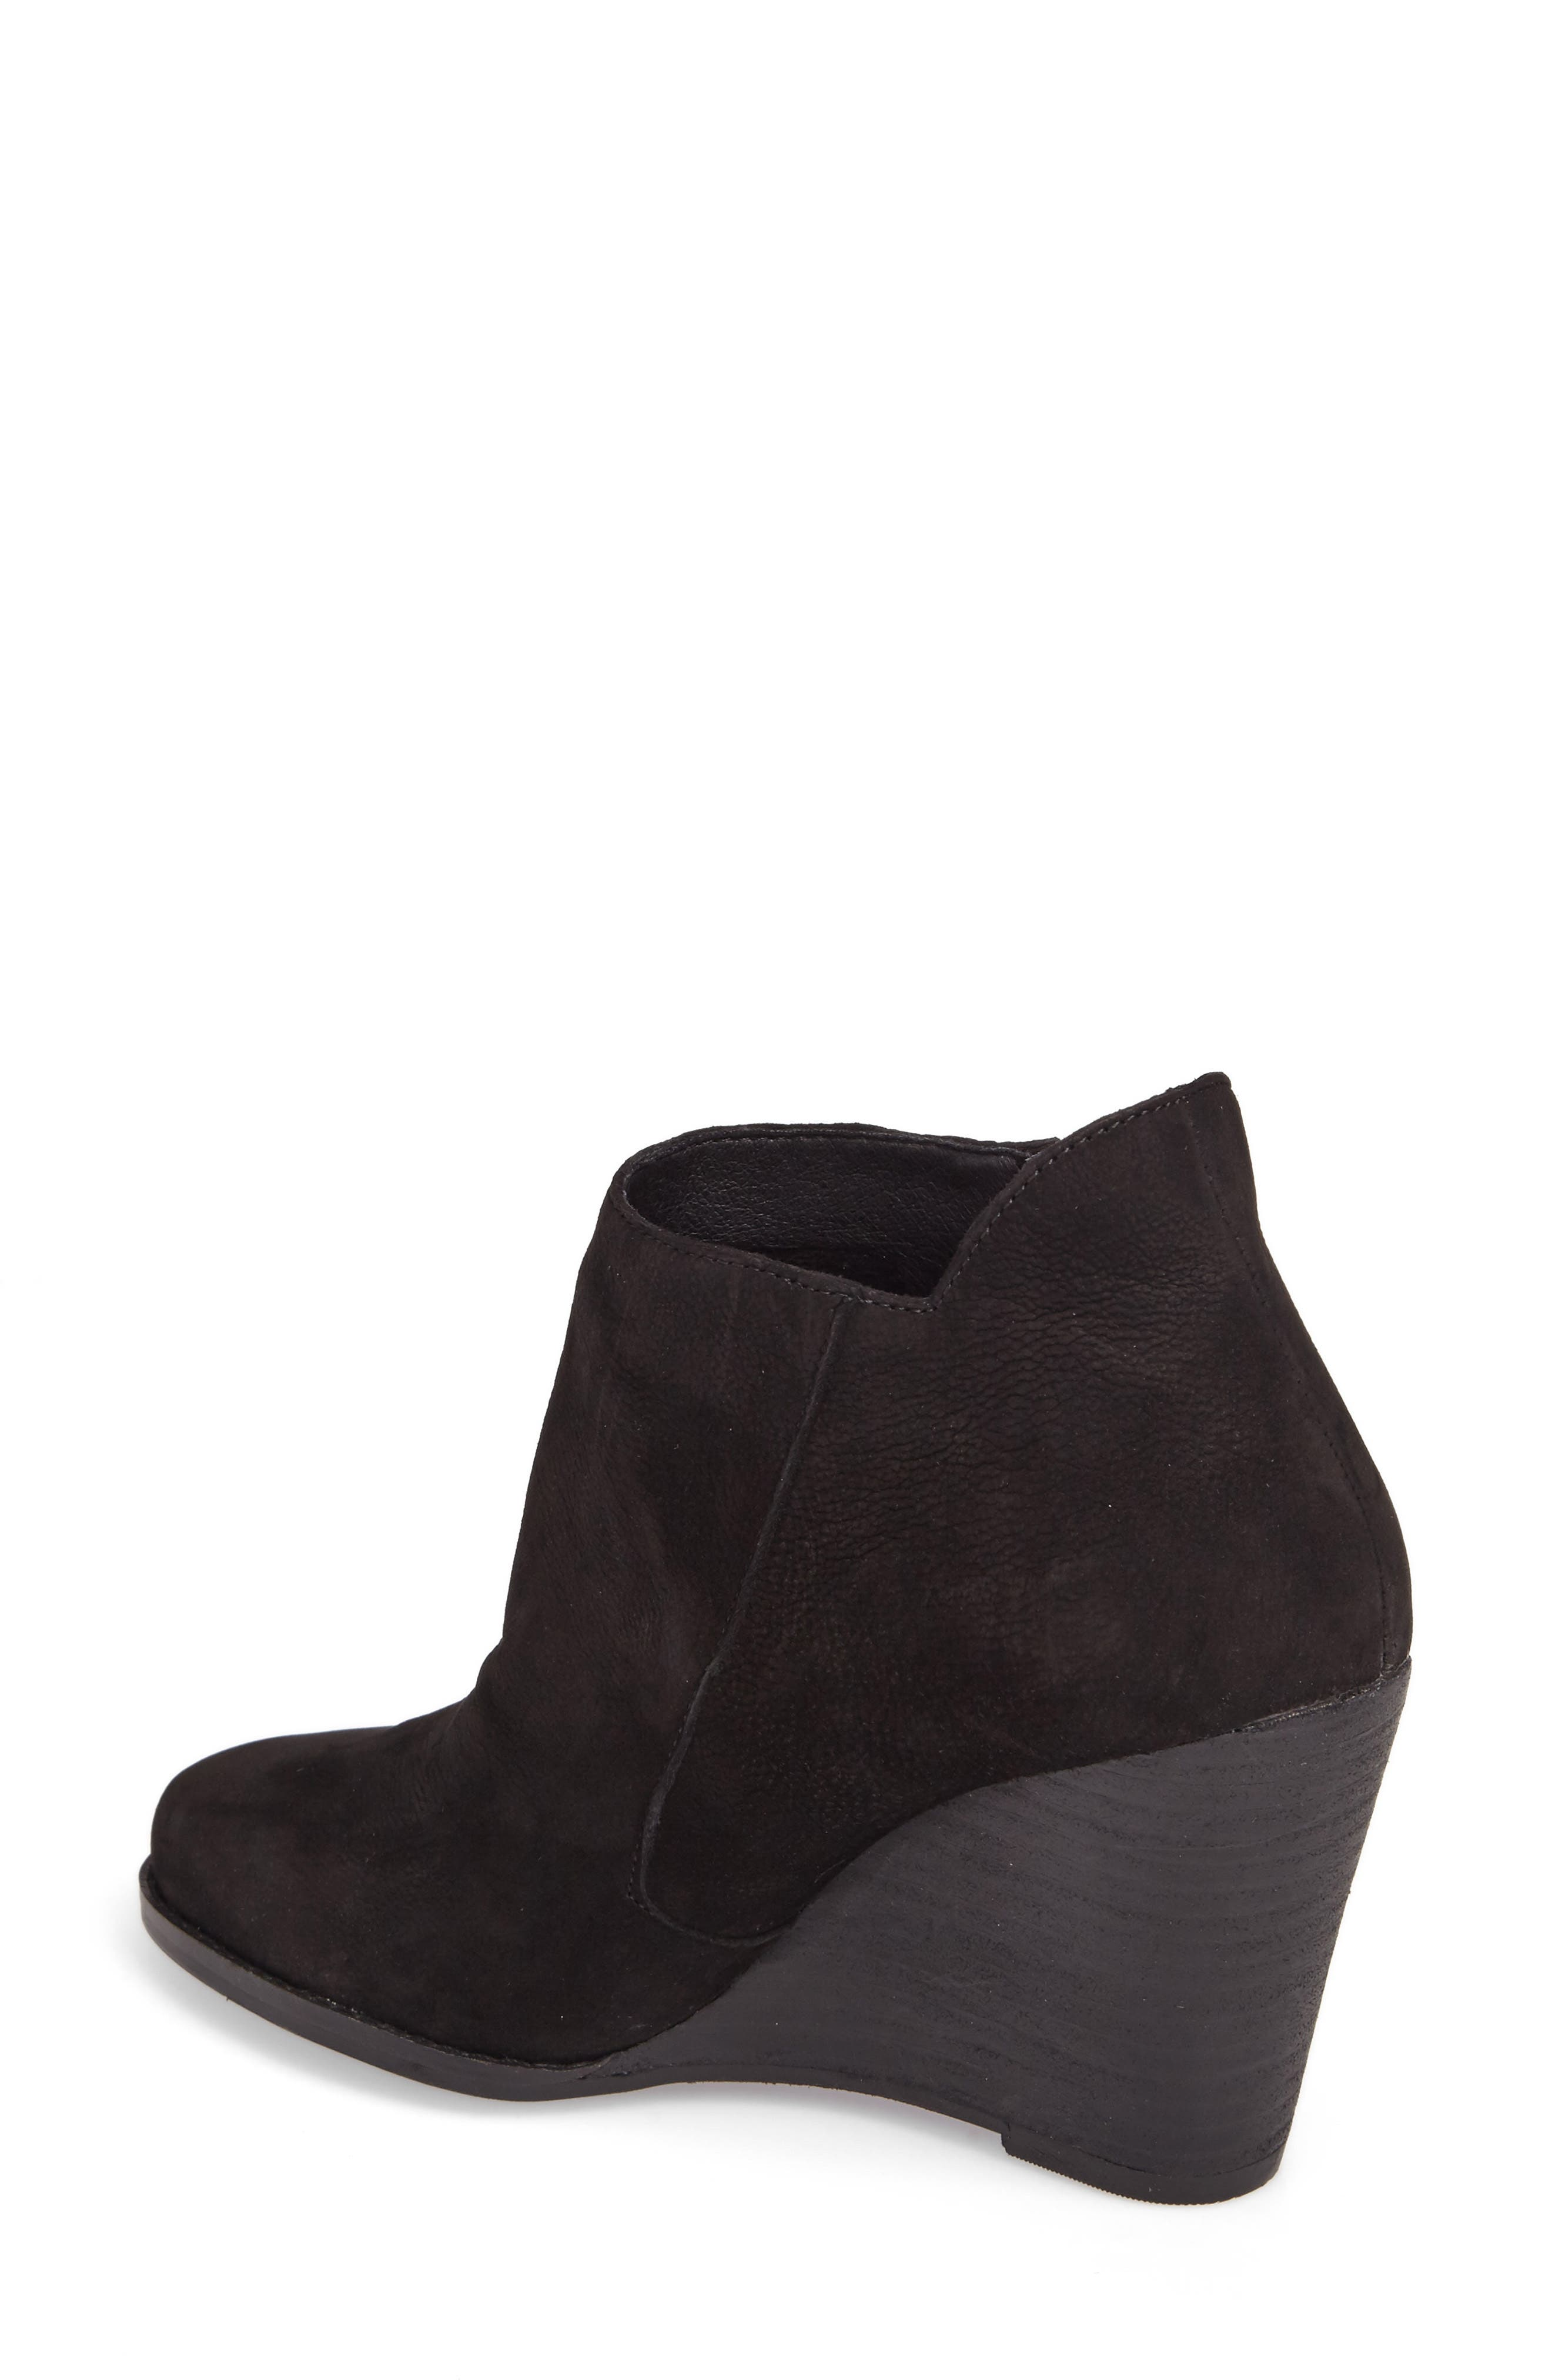 Carnivela Wedge Bootie,                             Alternate thumbnail 2, color,                             001